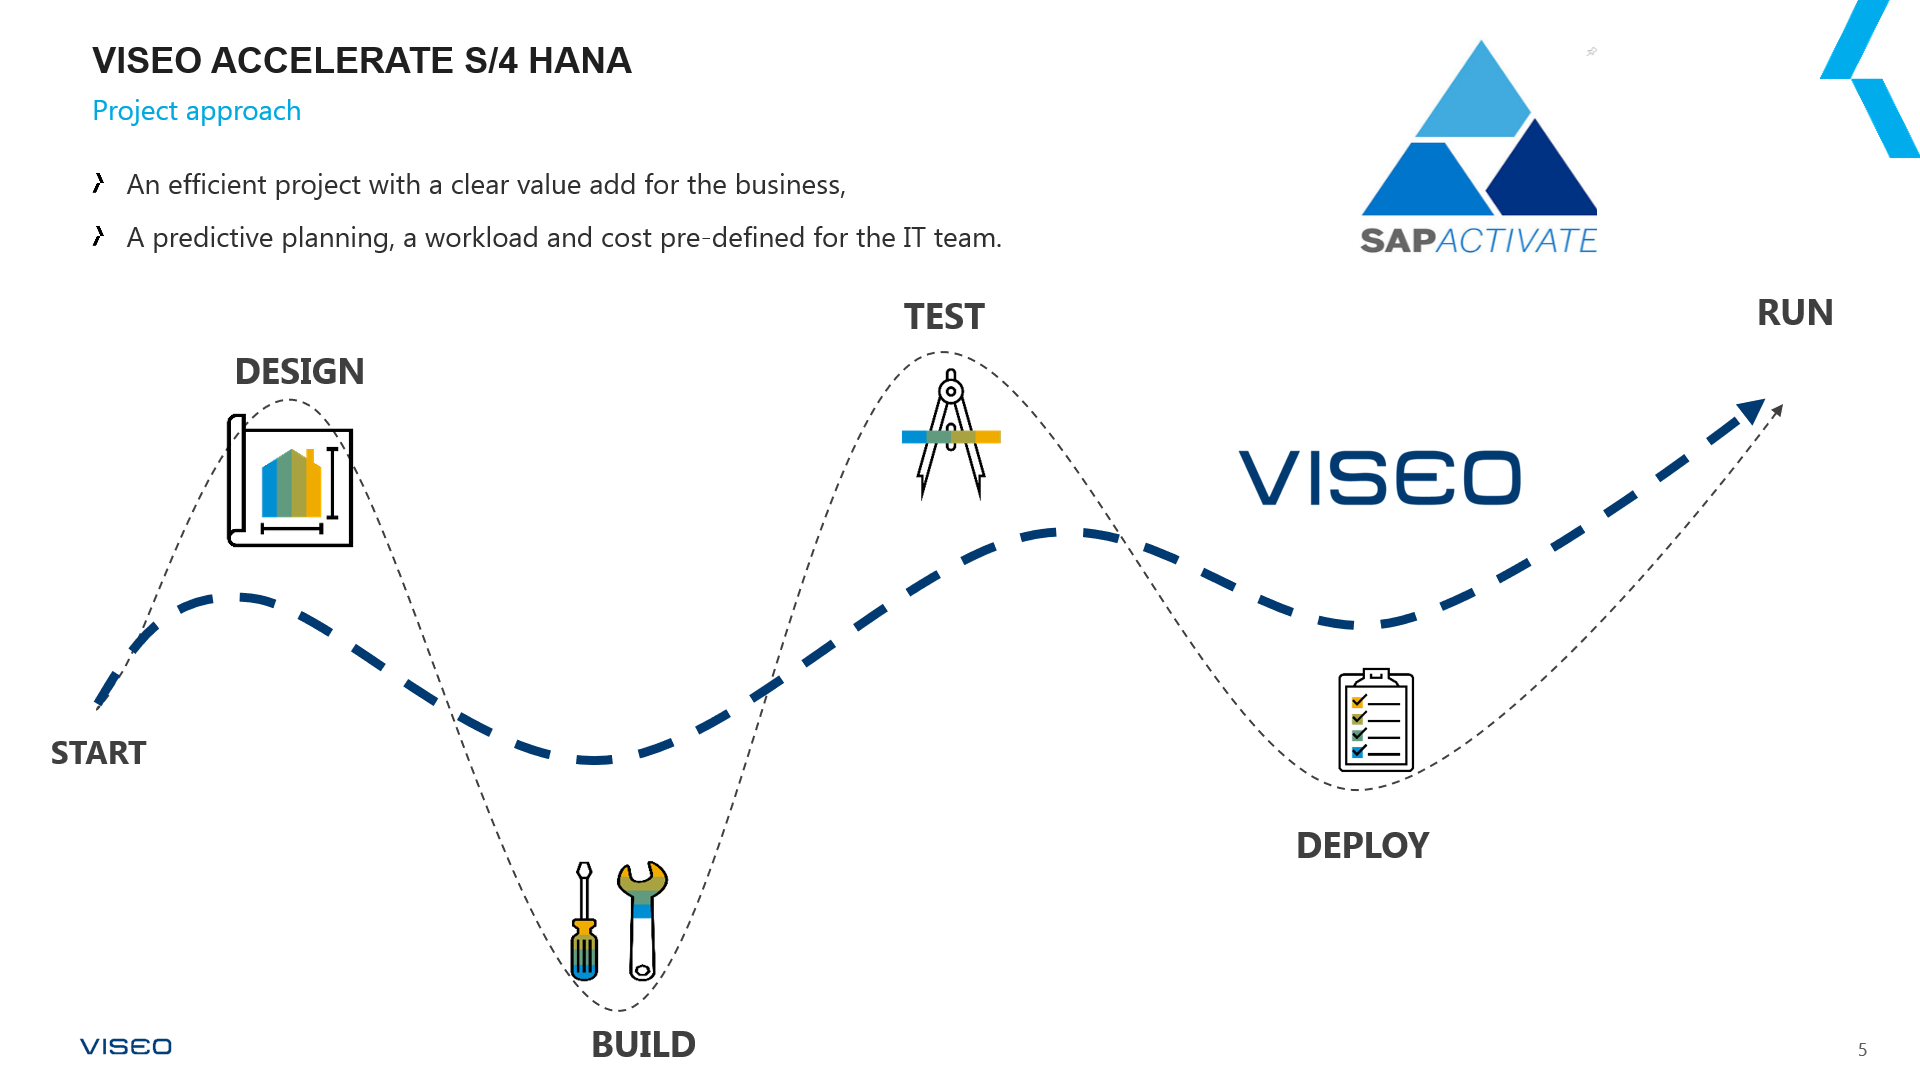 SAP Best practices by VISEO